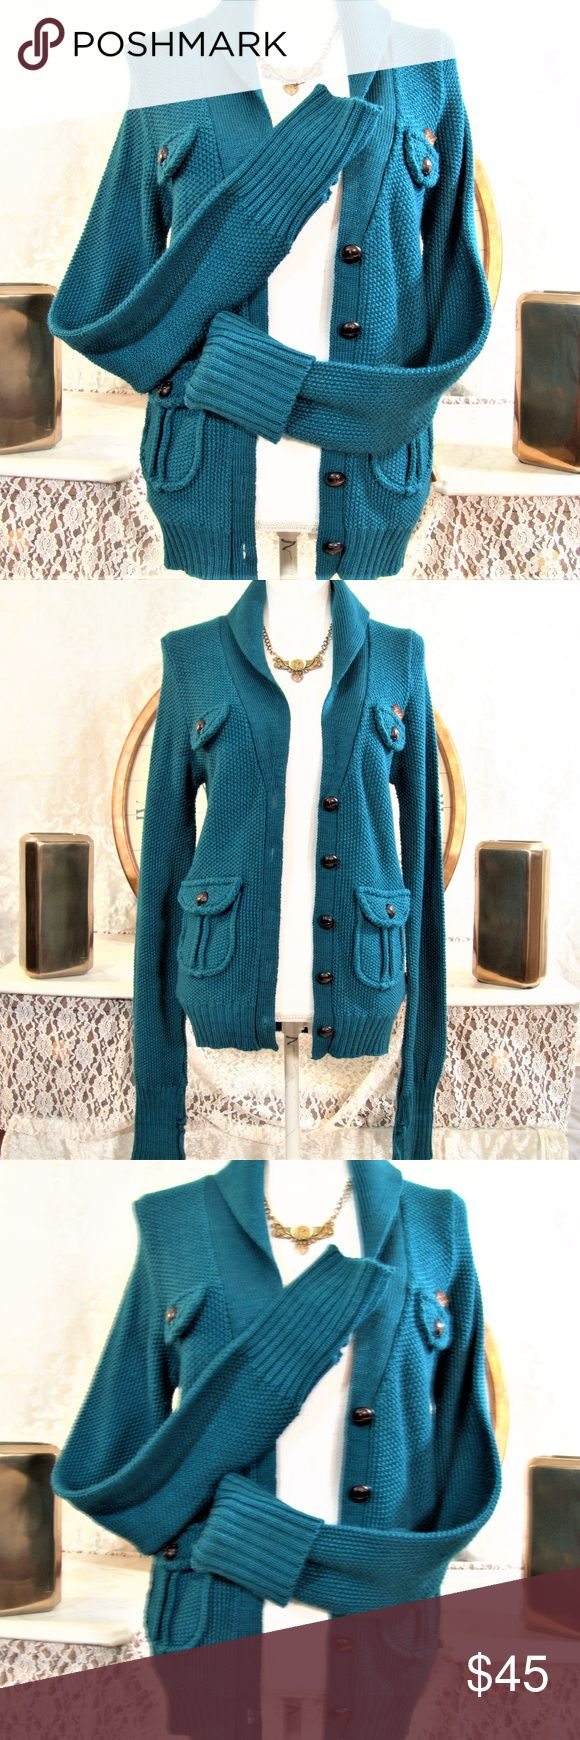 "EZEKIEL Rare SWEATER  Teal tex. knit womens M EZEKIEL (womens, ladies (Extremely Rare Find) TEAL CARDIGAN, SWEATER, W/ TEXTURED Knit fiber, w/ extra long sleeves, allows for CUFFS, WOOD??  or Resin wood BUTTONS. V-neck type LAPEL sweater.  2 pockets w/ buttons (9) buttons total.. Length is 27"" x bust 38"" w FLAT  UN--STRETCHERED. Beautiful Rare sweater, thick/ warm knit.  SIZE (MEDIUM) (M) Garment contents 80% Acrylic & 20% wool, made in India for EZEKIEL Brand. Garment is GREAT/EXCELLENT"